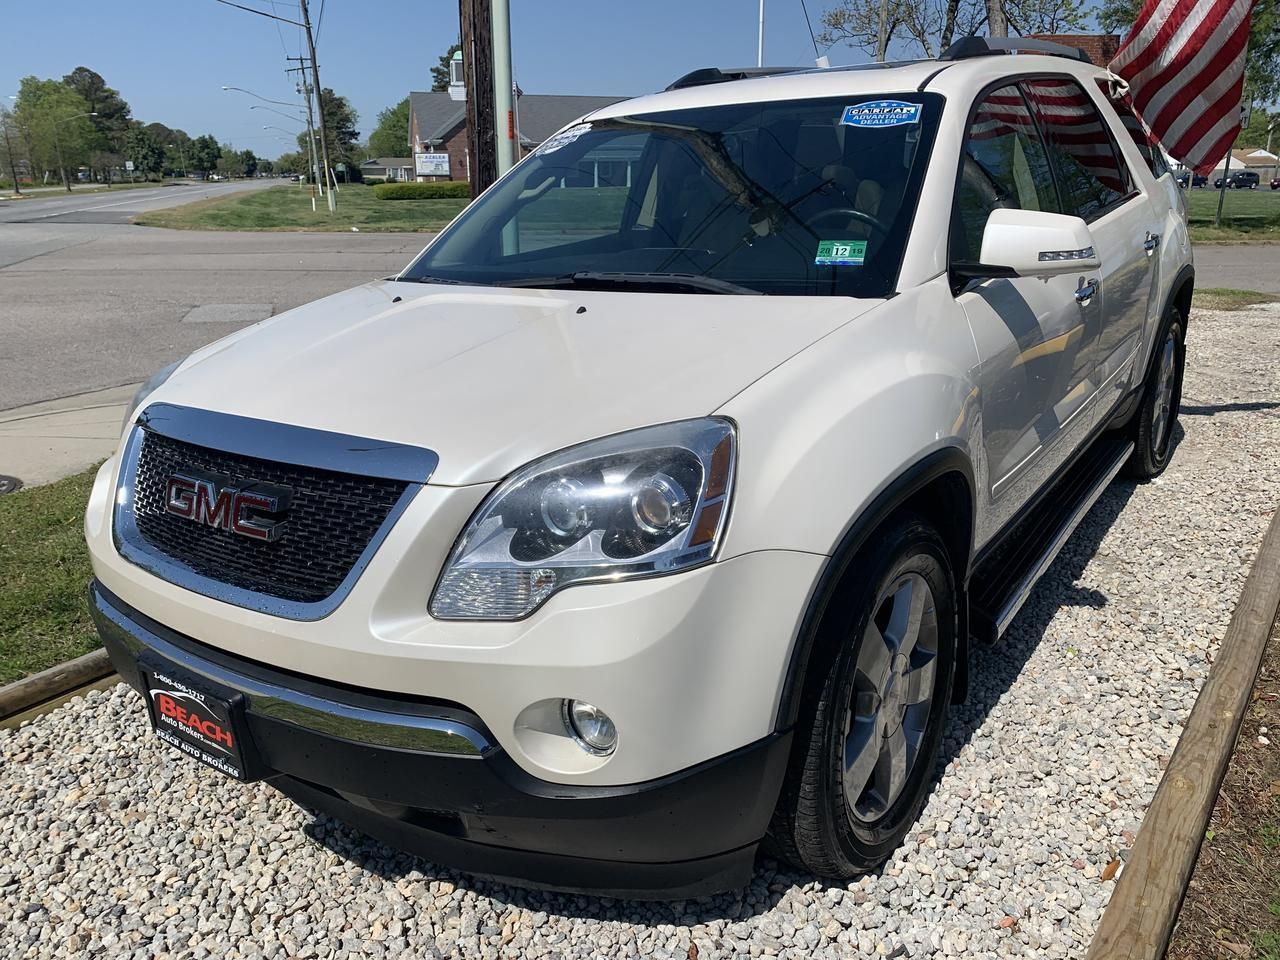 2011 GMC ACADIA SLT2, WARRANTY, LEATHER, 3RD ROW, NAV, BOSE SOUND, BLUETOOTH, BACKUP CAM, SUNROOF, CLEAN CARFAX! Norfolk VA